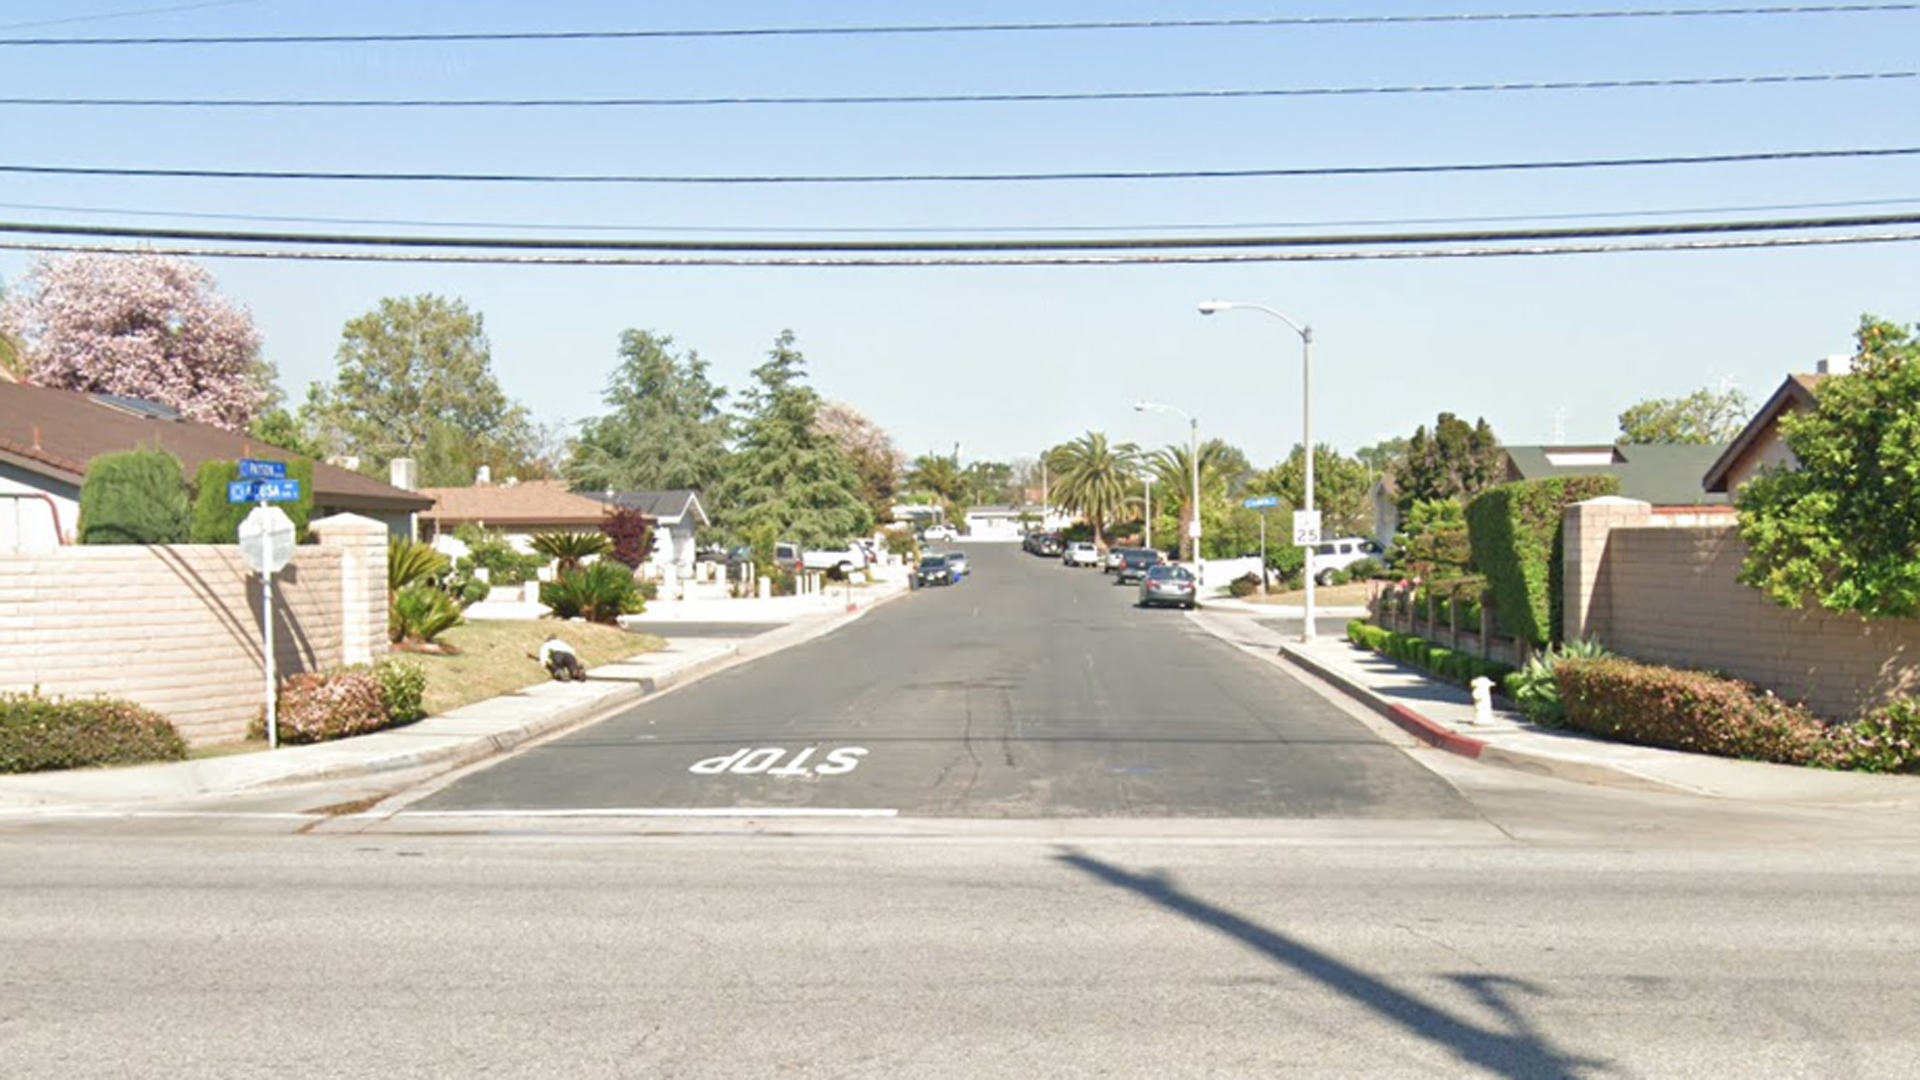 The 100 block of East Payson Street in Azusa, as pictured in a Google Street View image.